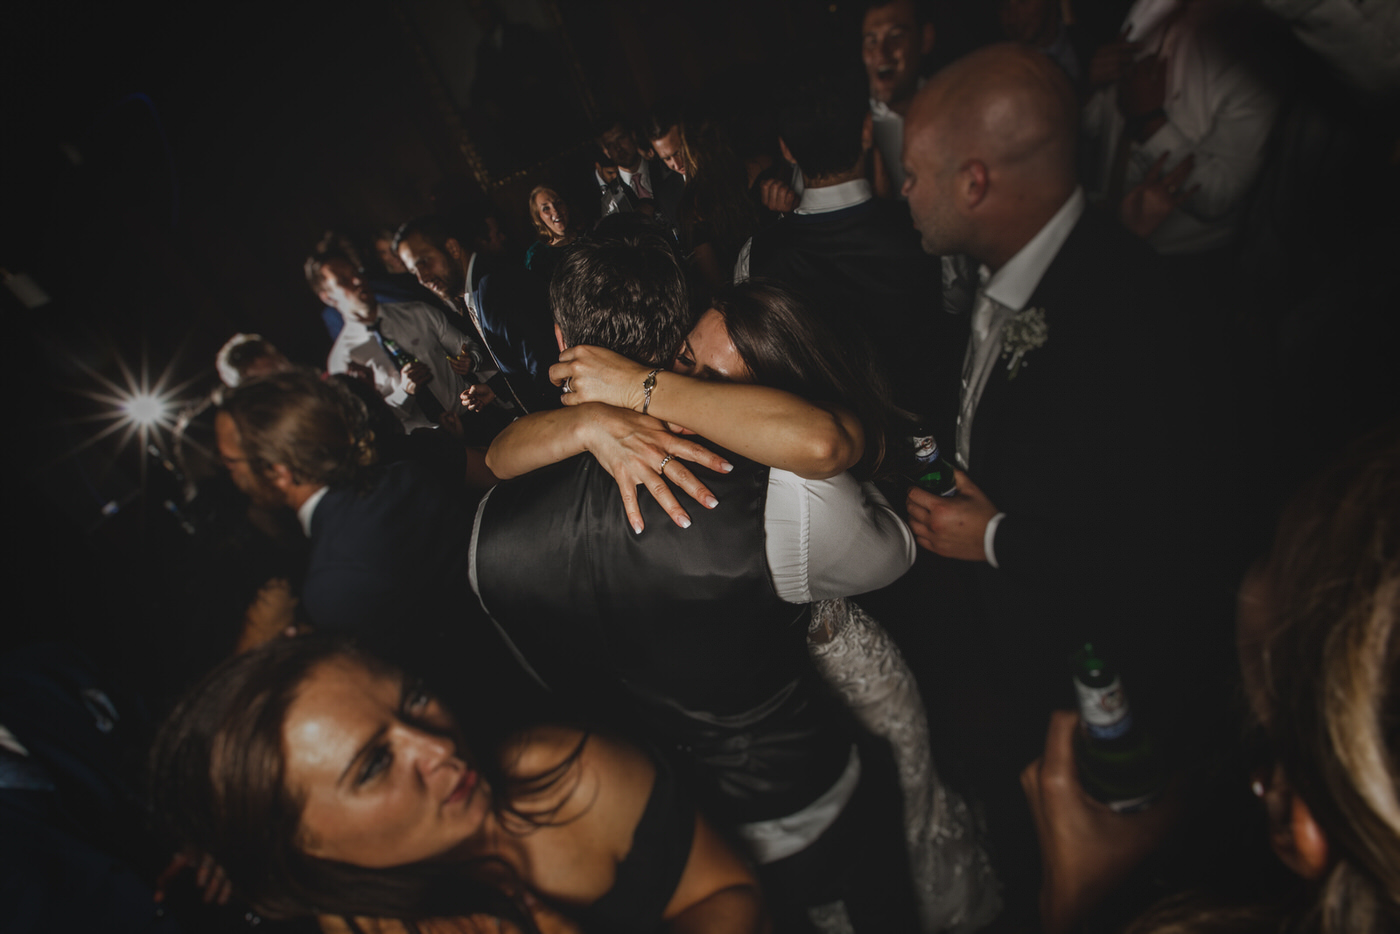 the bride and groom embrace on the dancefloor at Thornton Manor